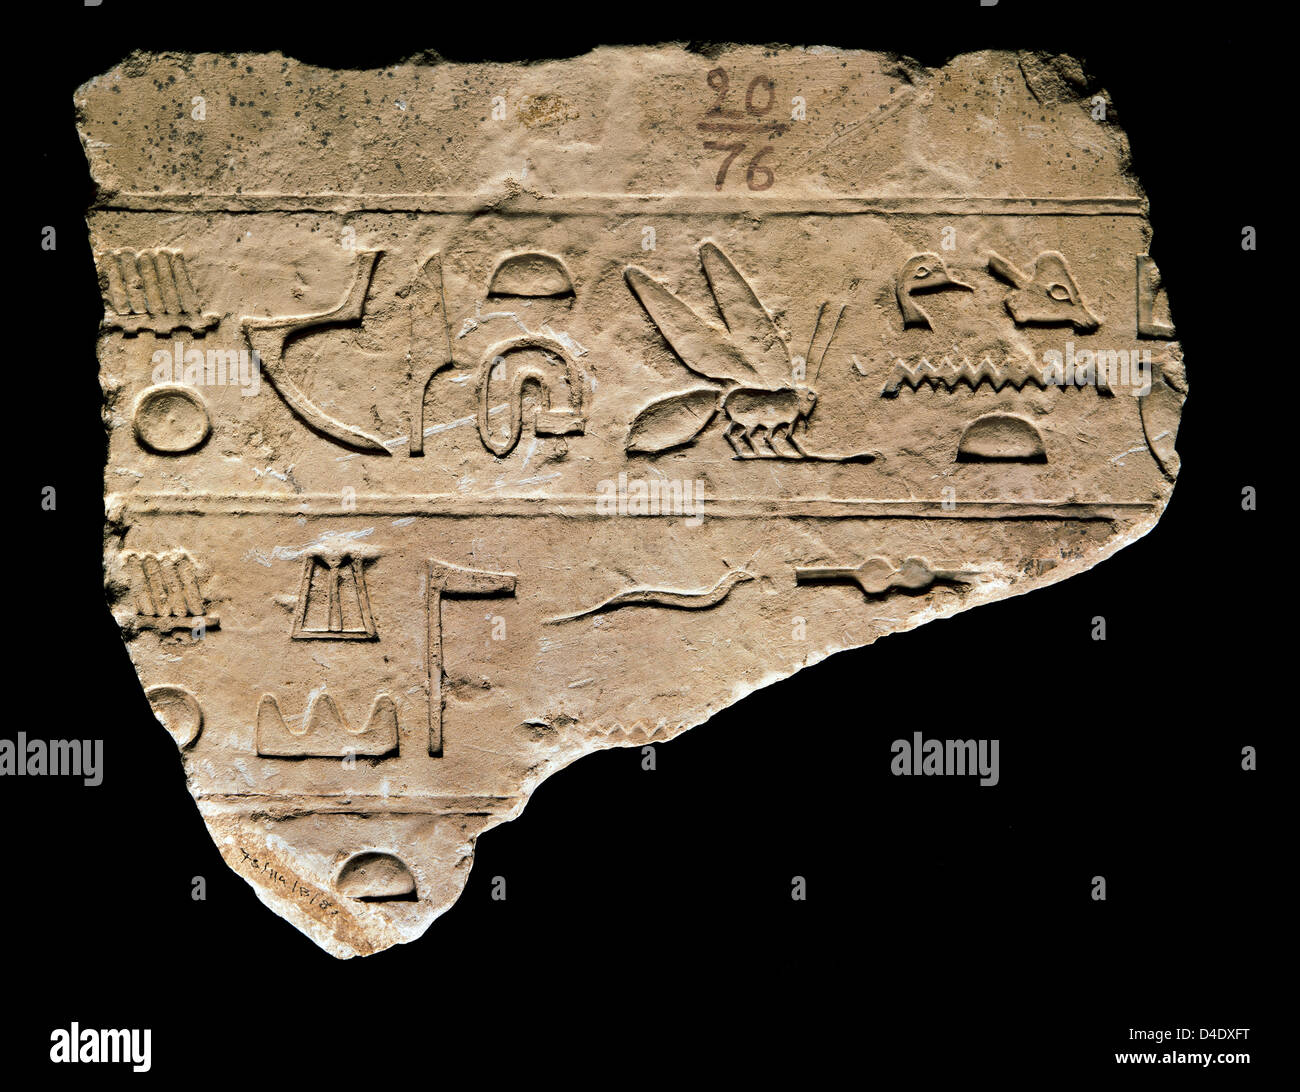 Egyptian art. Detail of a hieroglyph. Engraved in stone. National Archaeological Museum. Madrid. Spain. - Stock Image